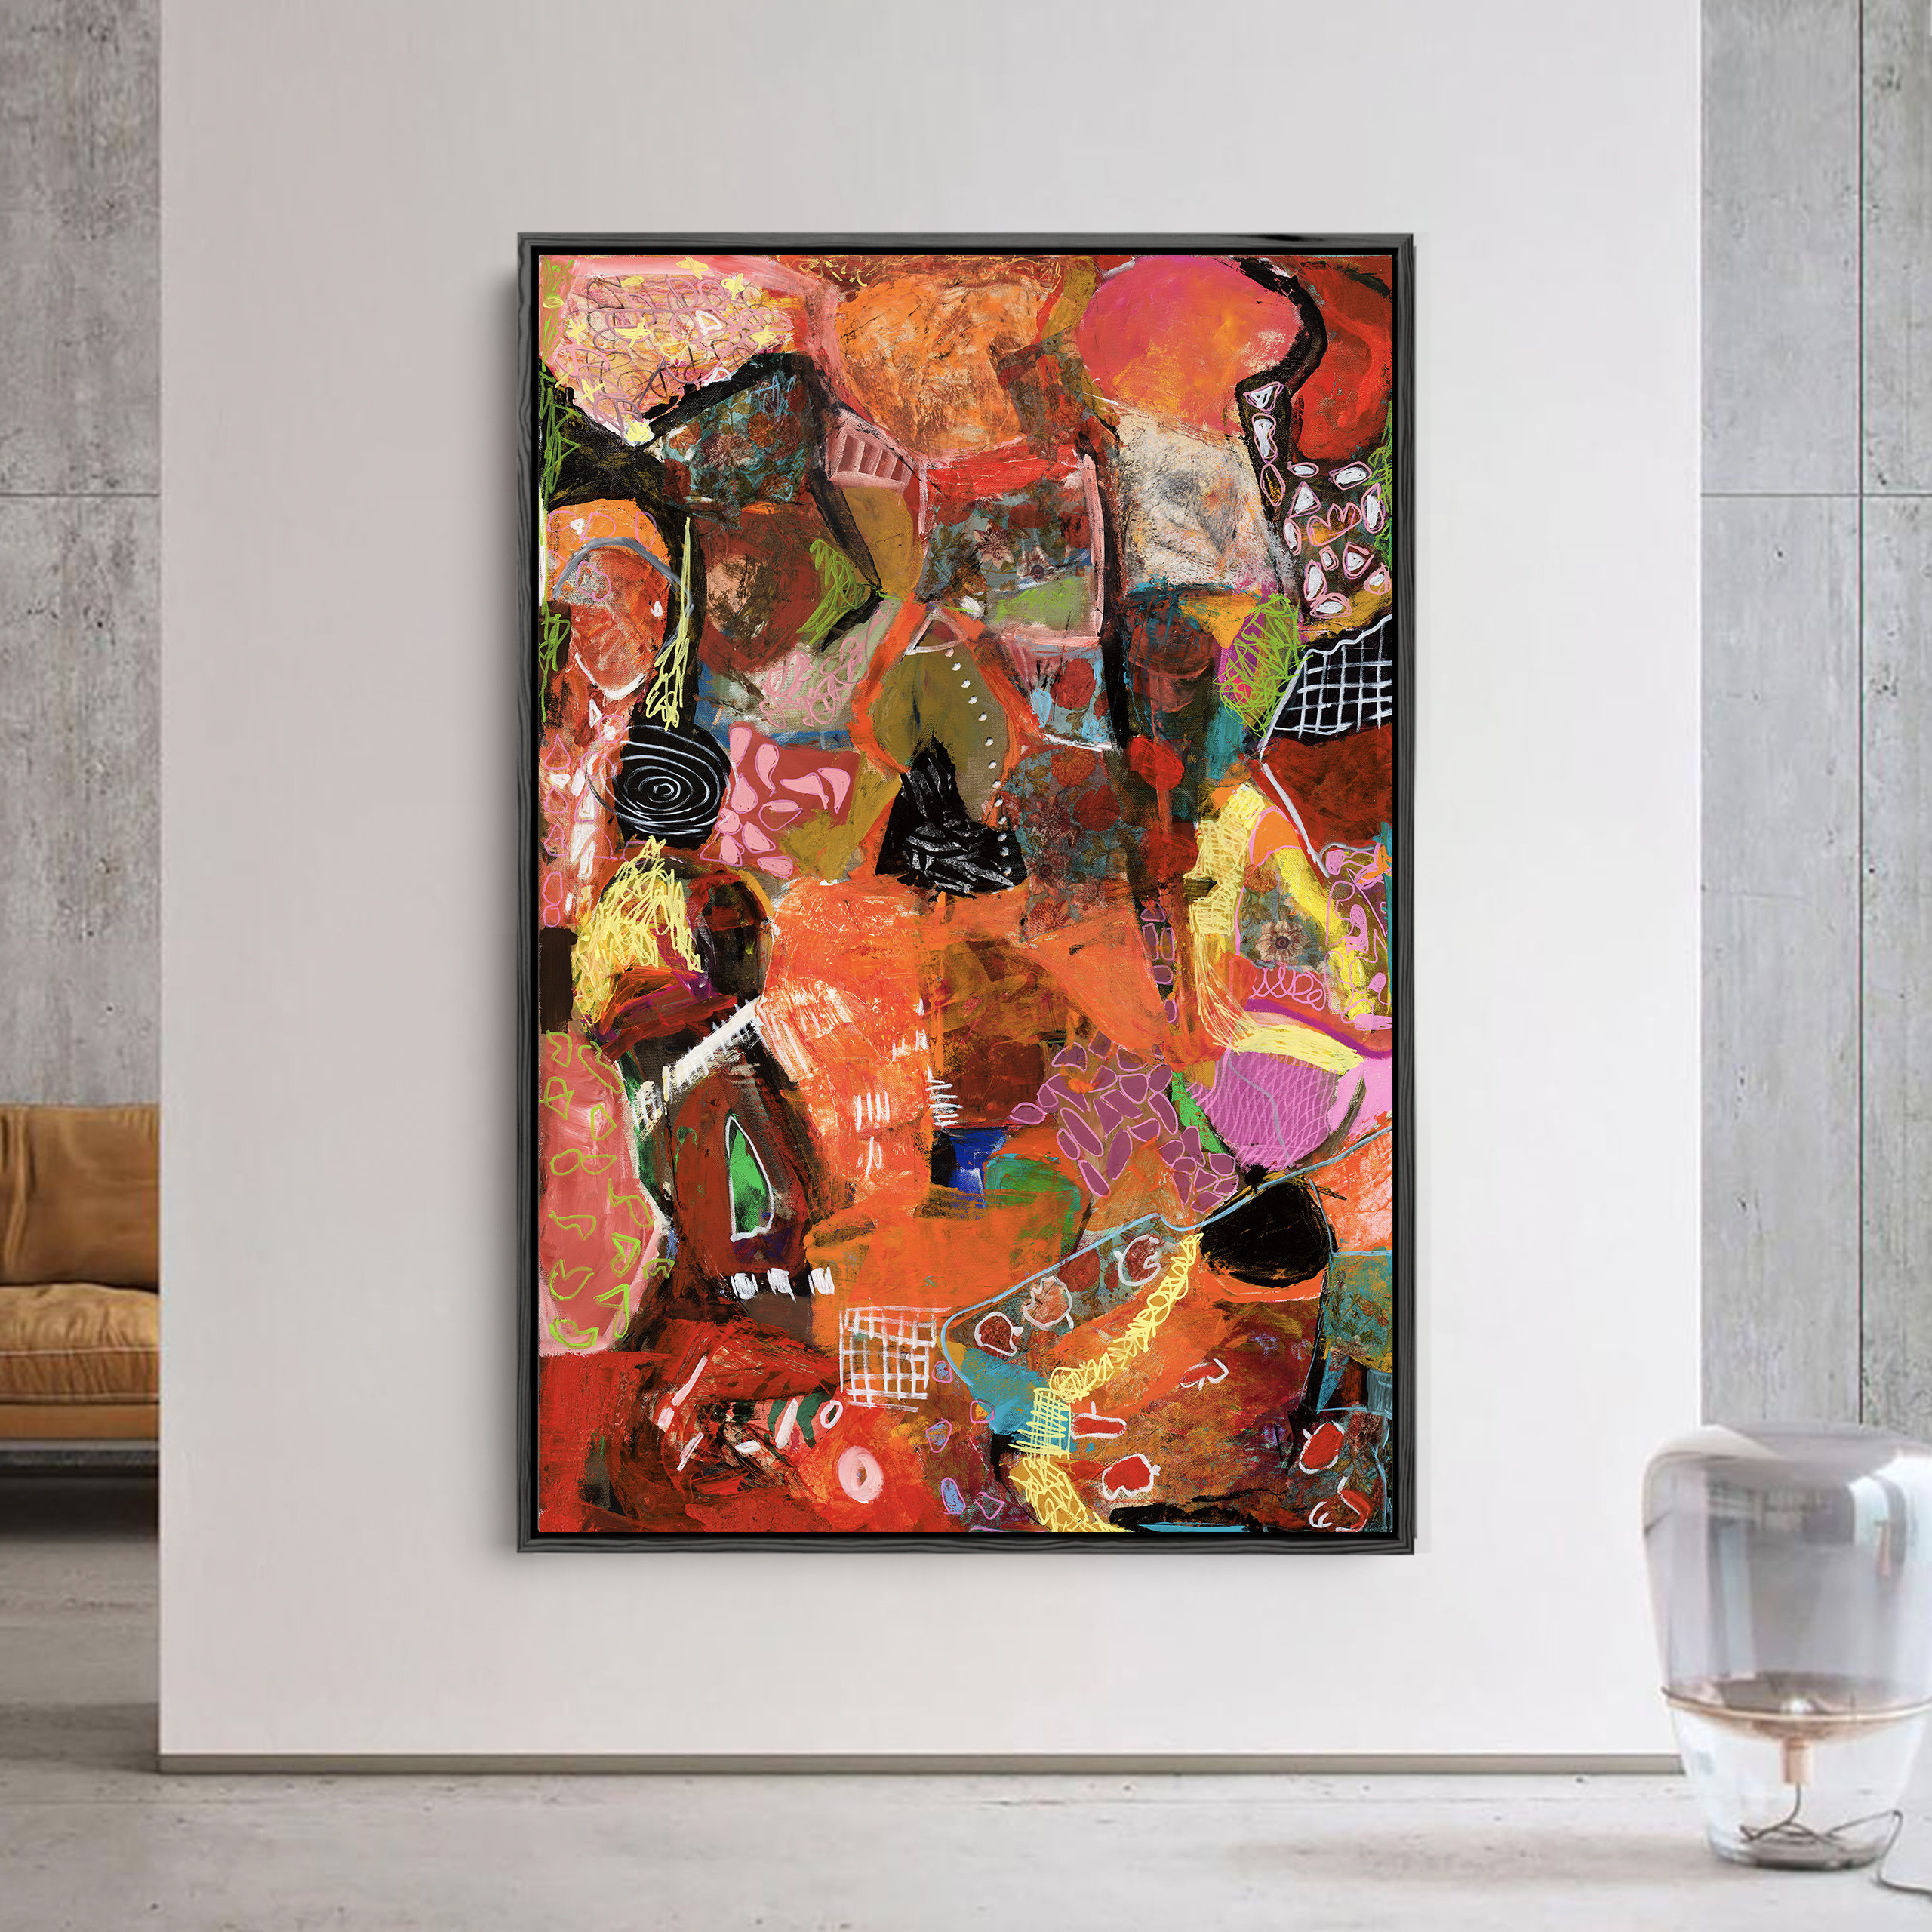 Fire and brimstone red bold abstract art for home decor